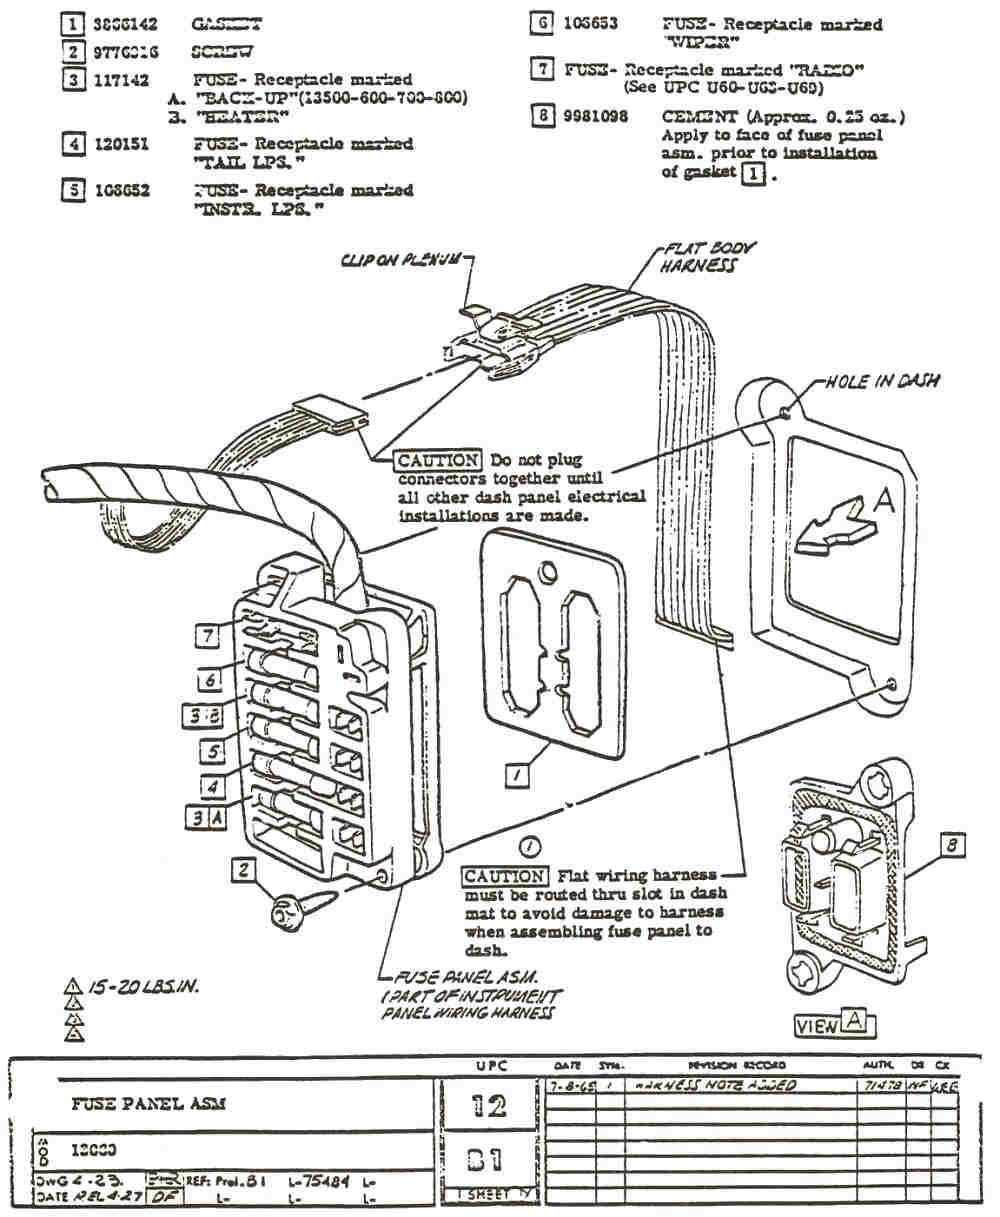 67 Camaro Fuse Box Diagram 1969 Camaro Wiring Schematic 67 Camaro Fuse Box  Diagram